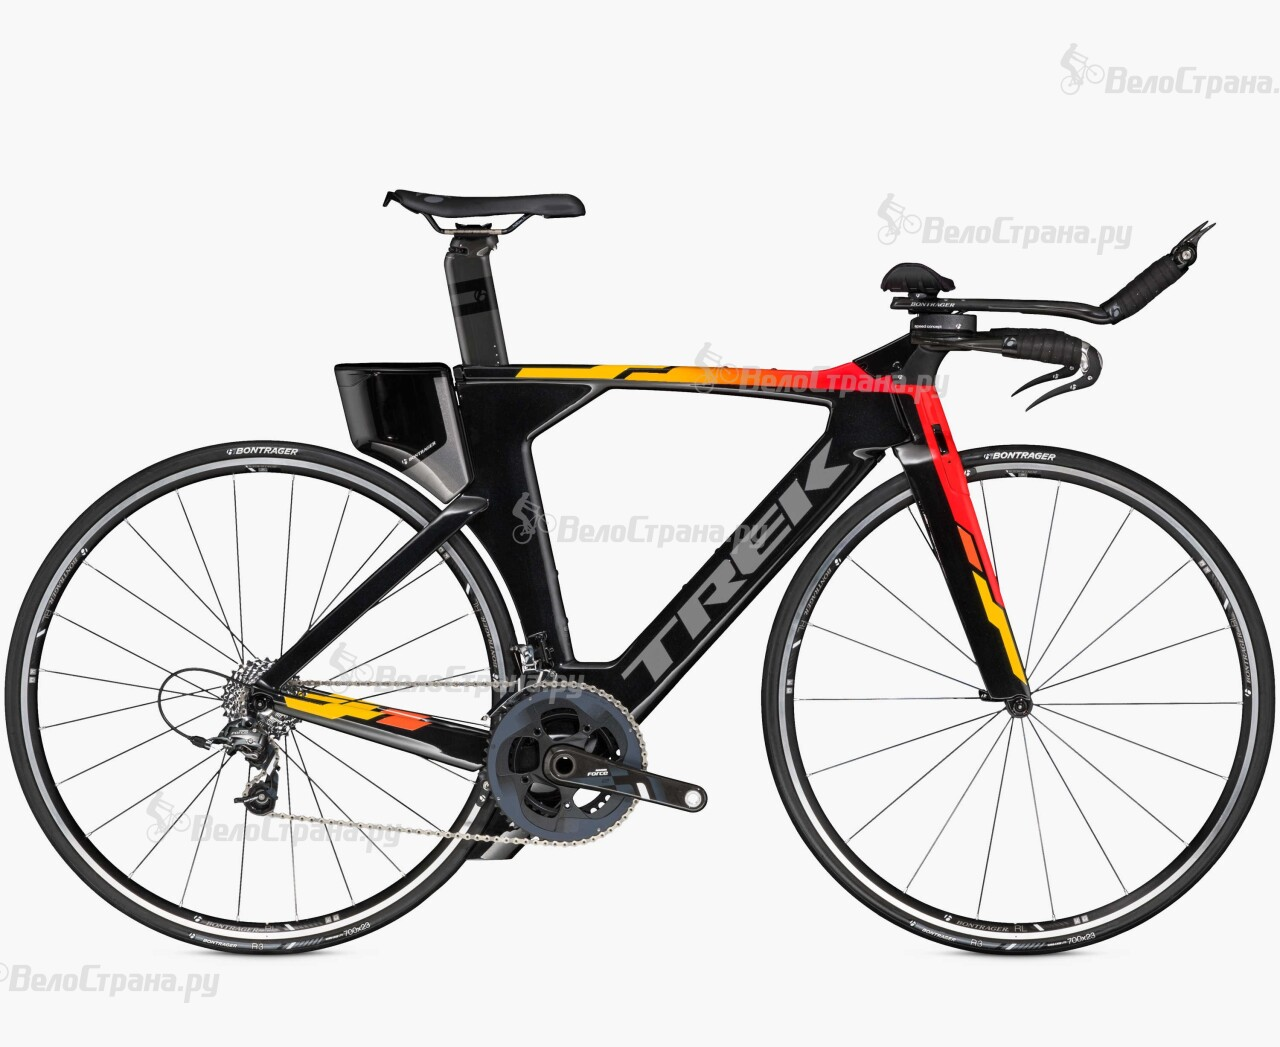 Велосипед Trek Speed Concept 9.5 (2016) concept driven 2sc0435t 2sc0435t2a0 17 new stock